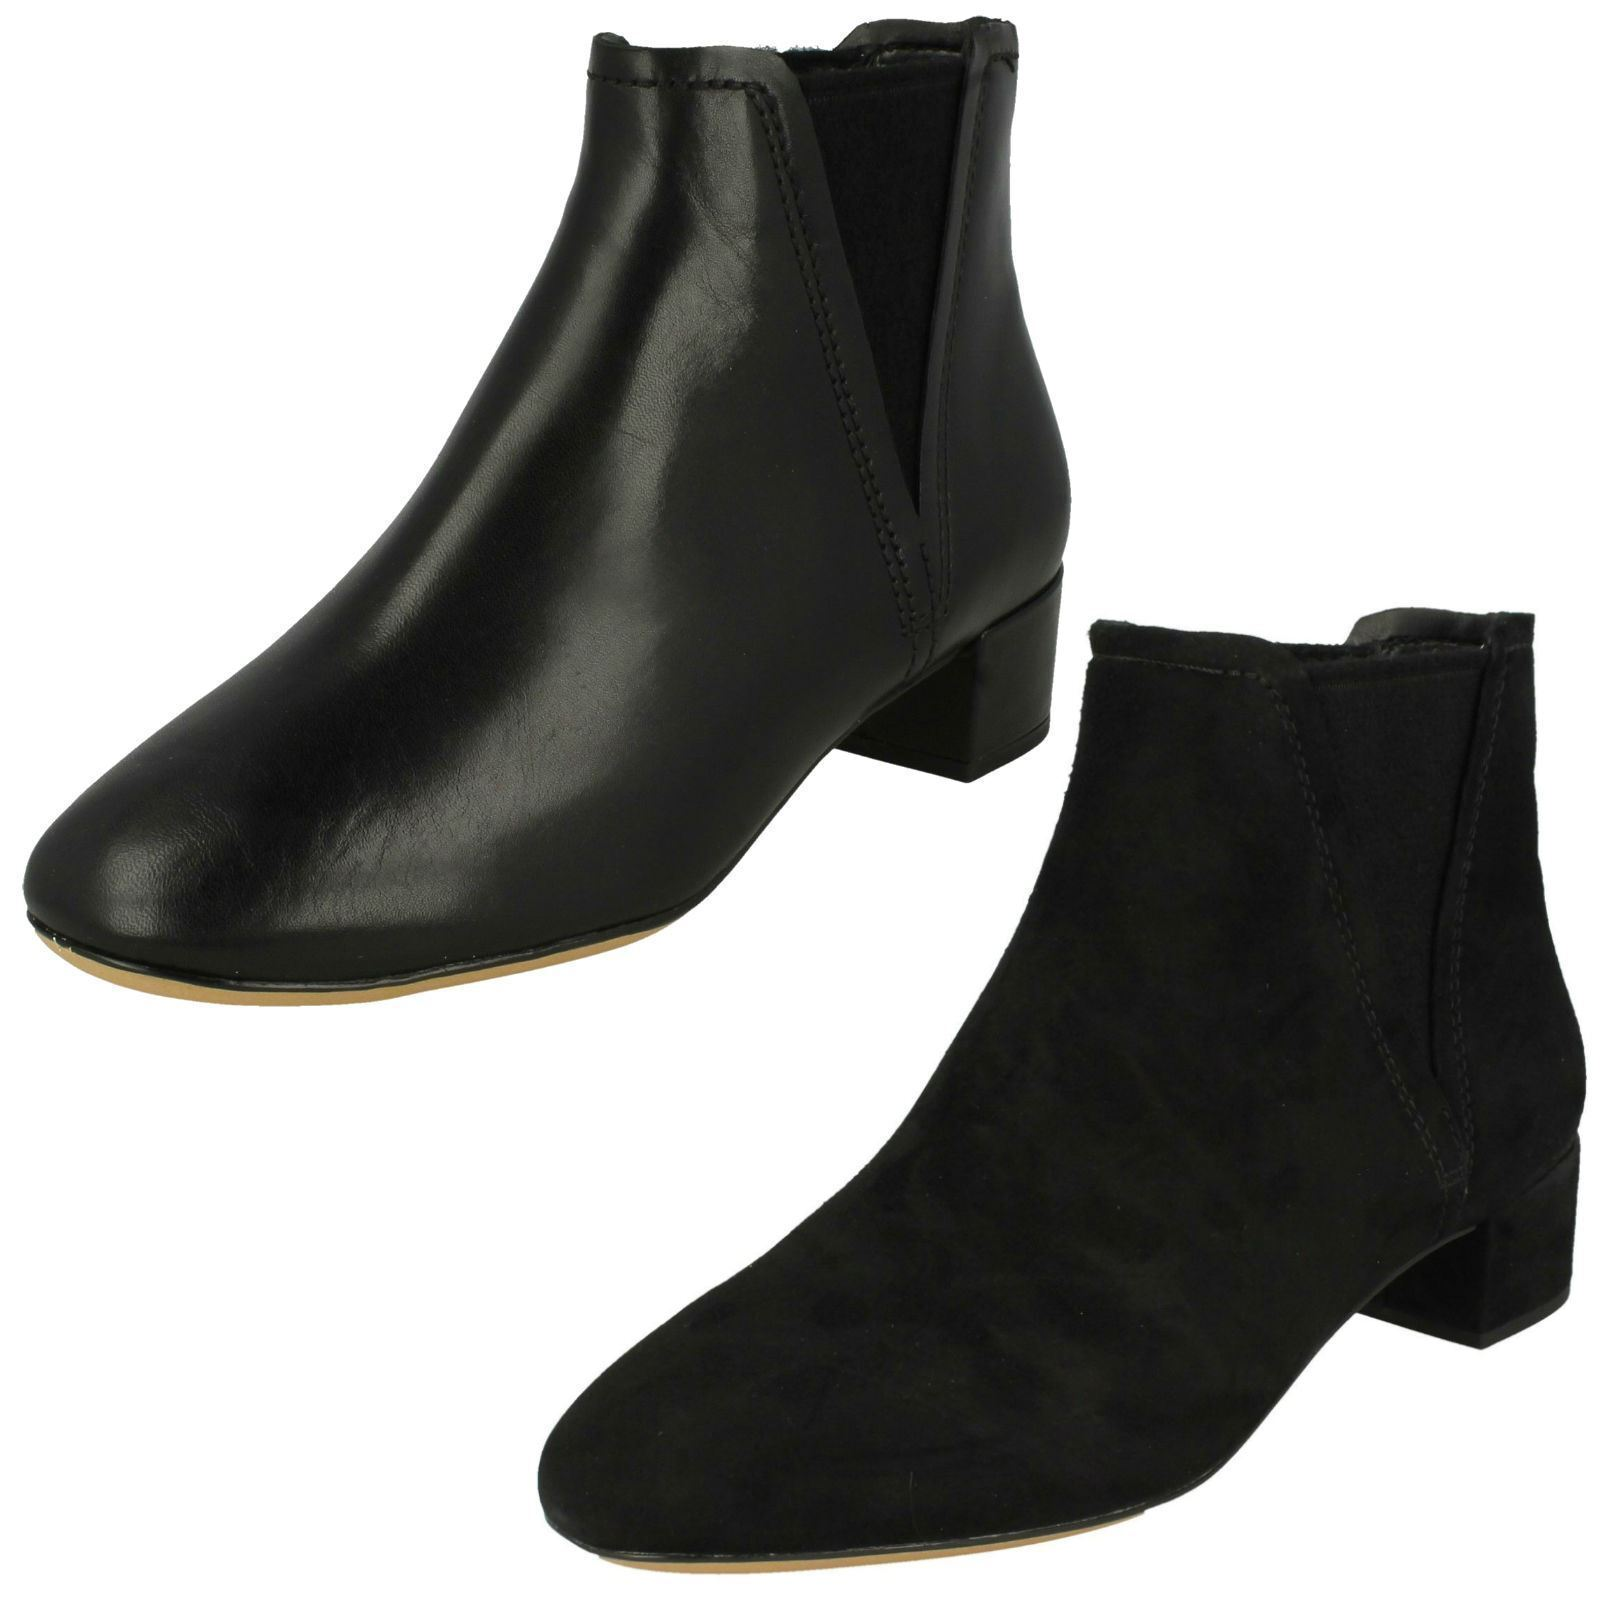 Clarks Ladies Leather Ankle Boots 'Orabella Ruby'